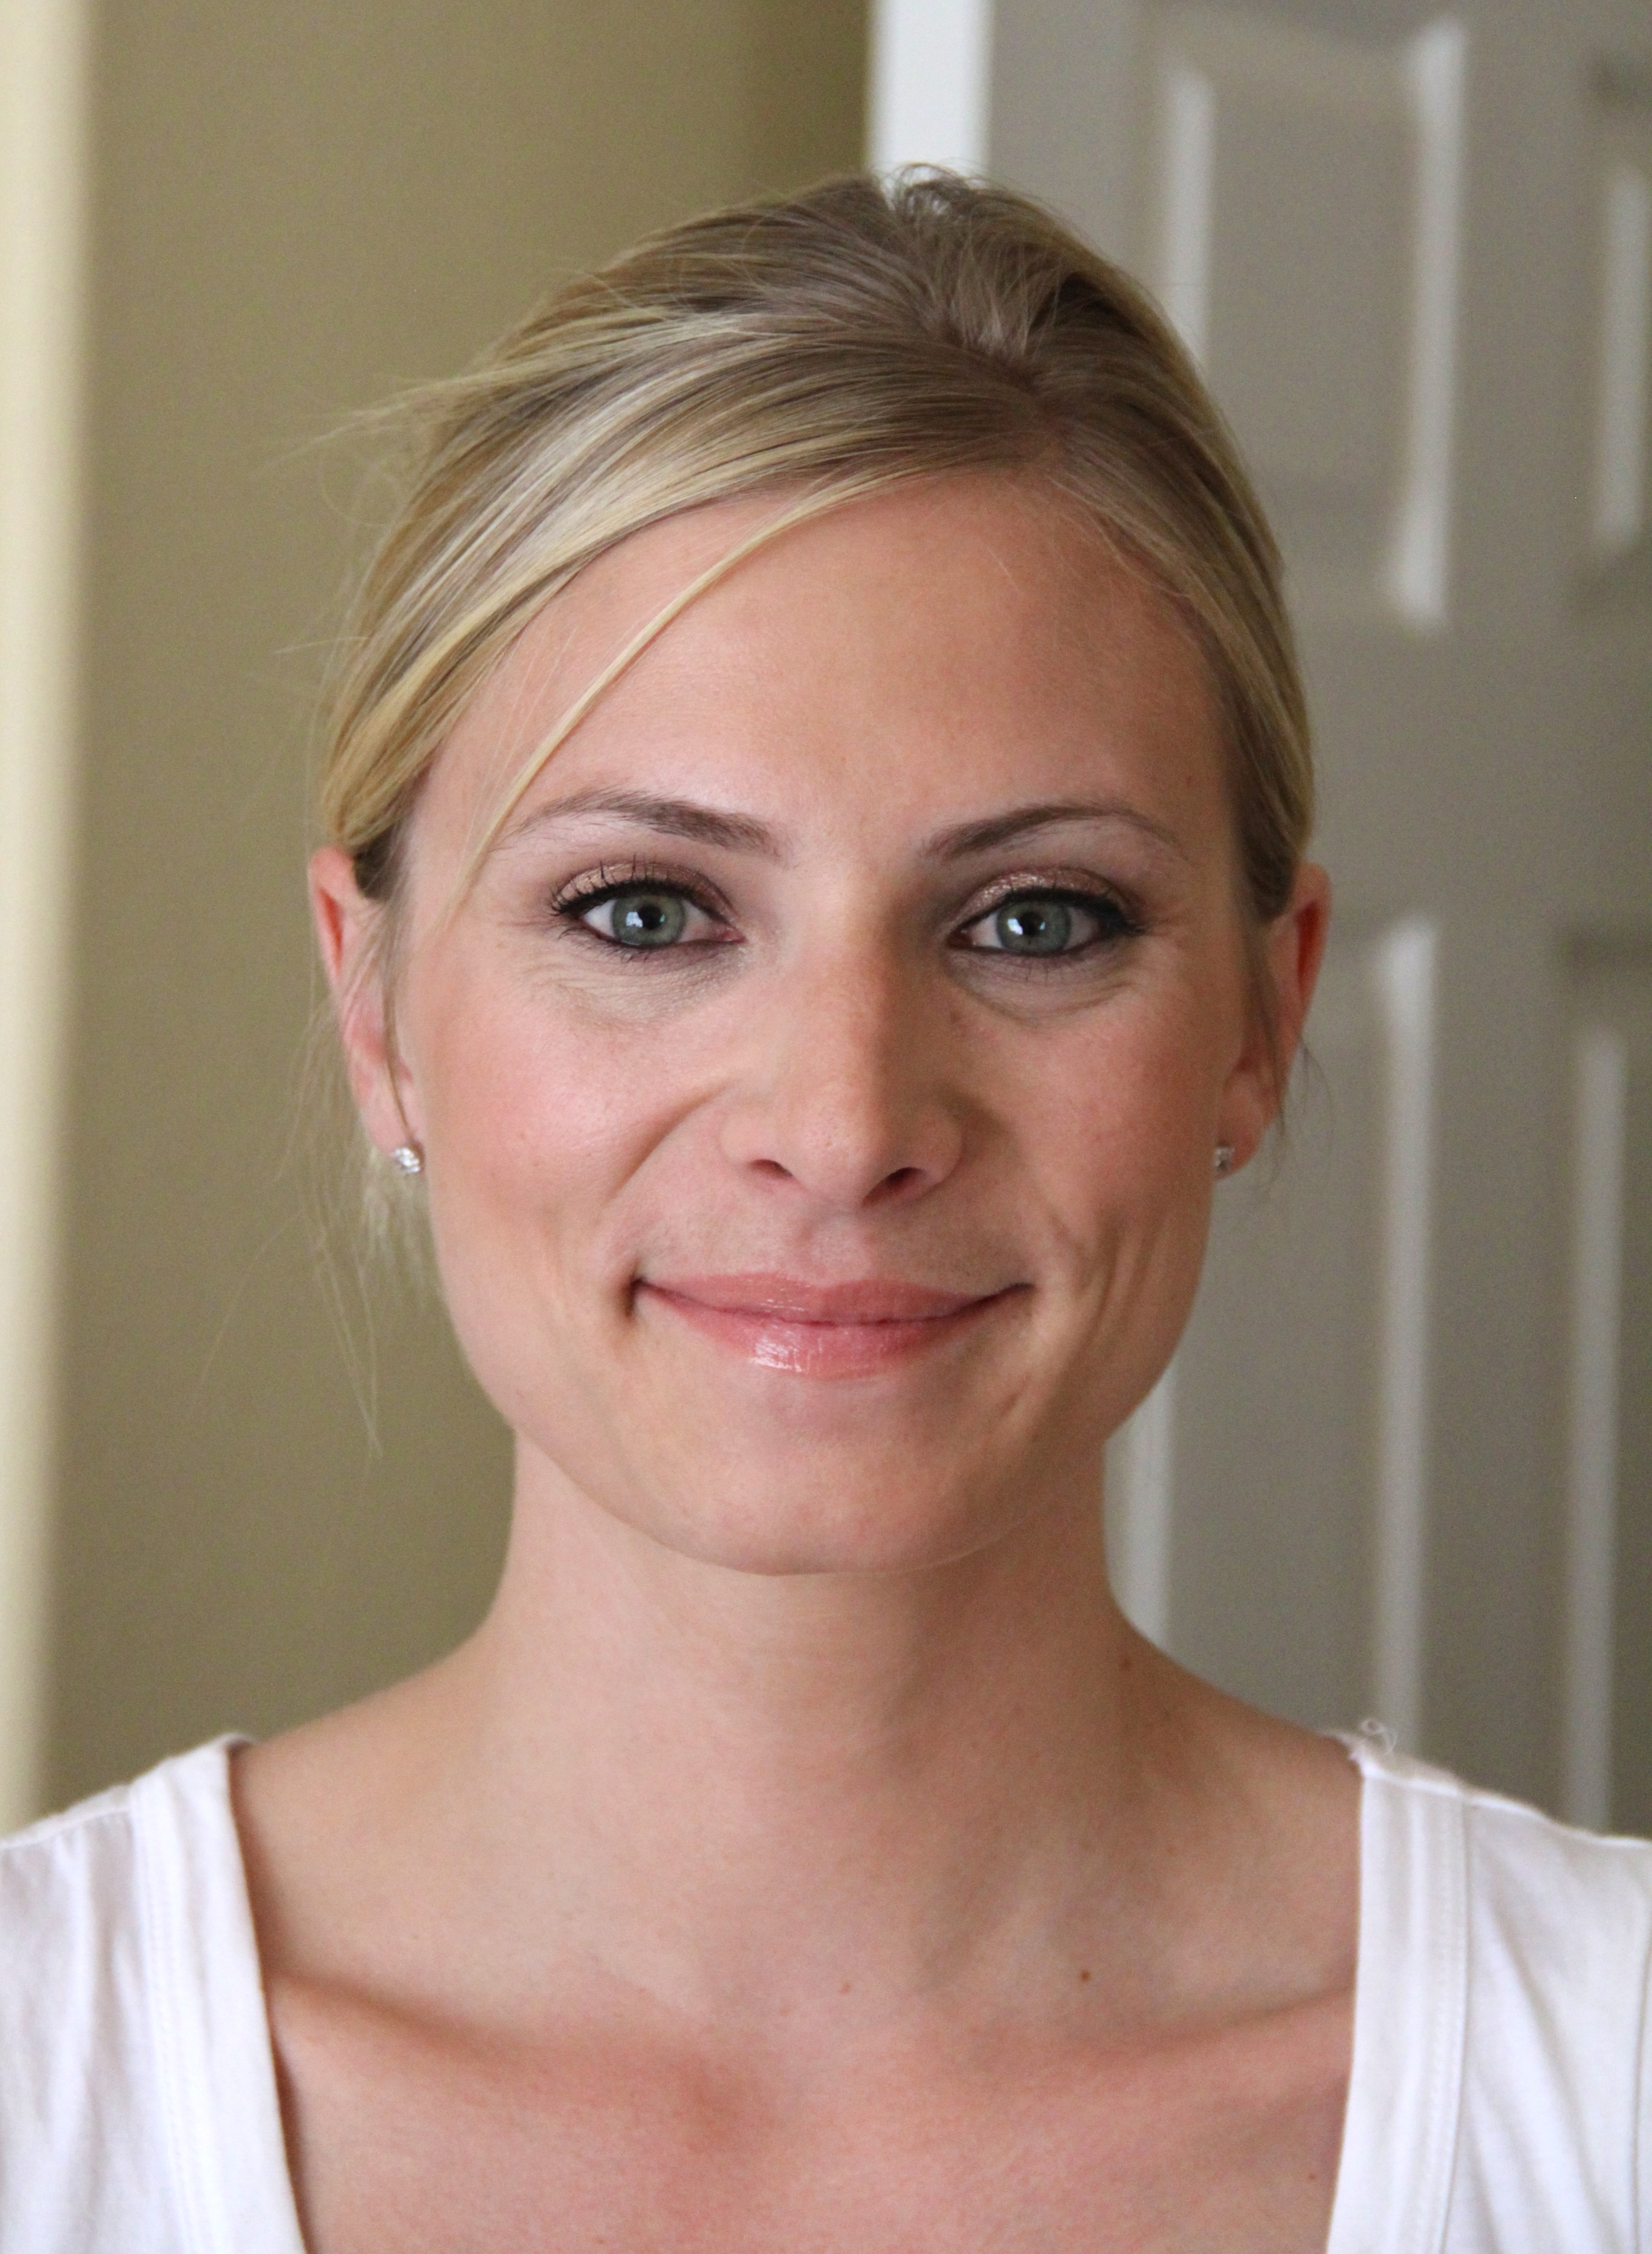 Makeup Before and After: Saylee, Alison Raffaele, and Smashbox